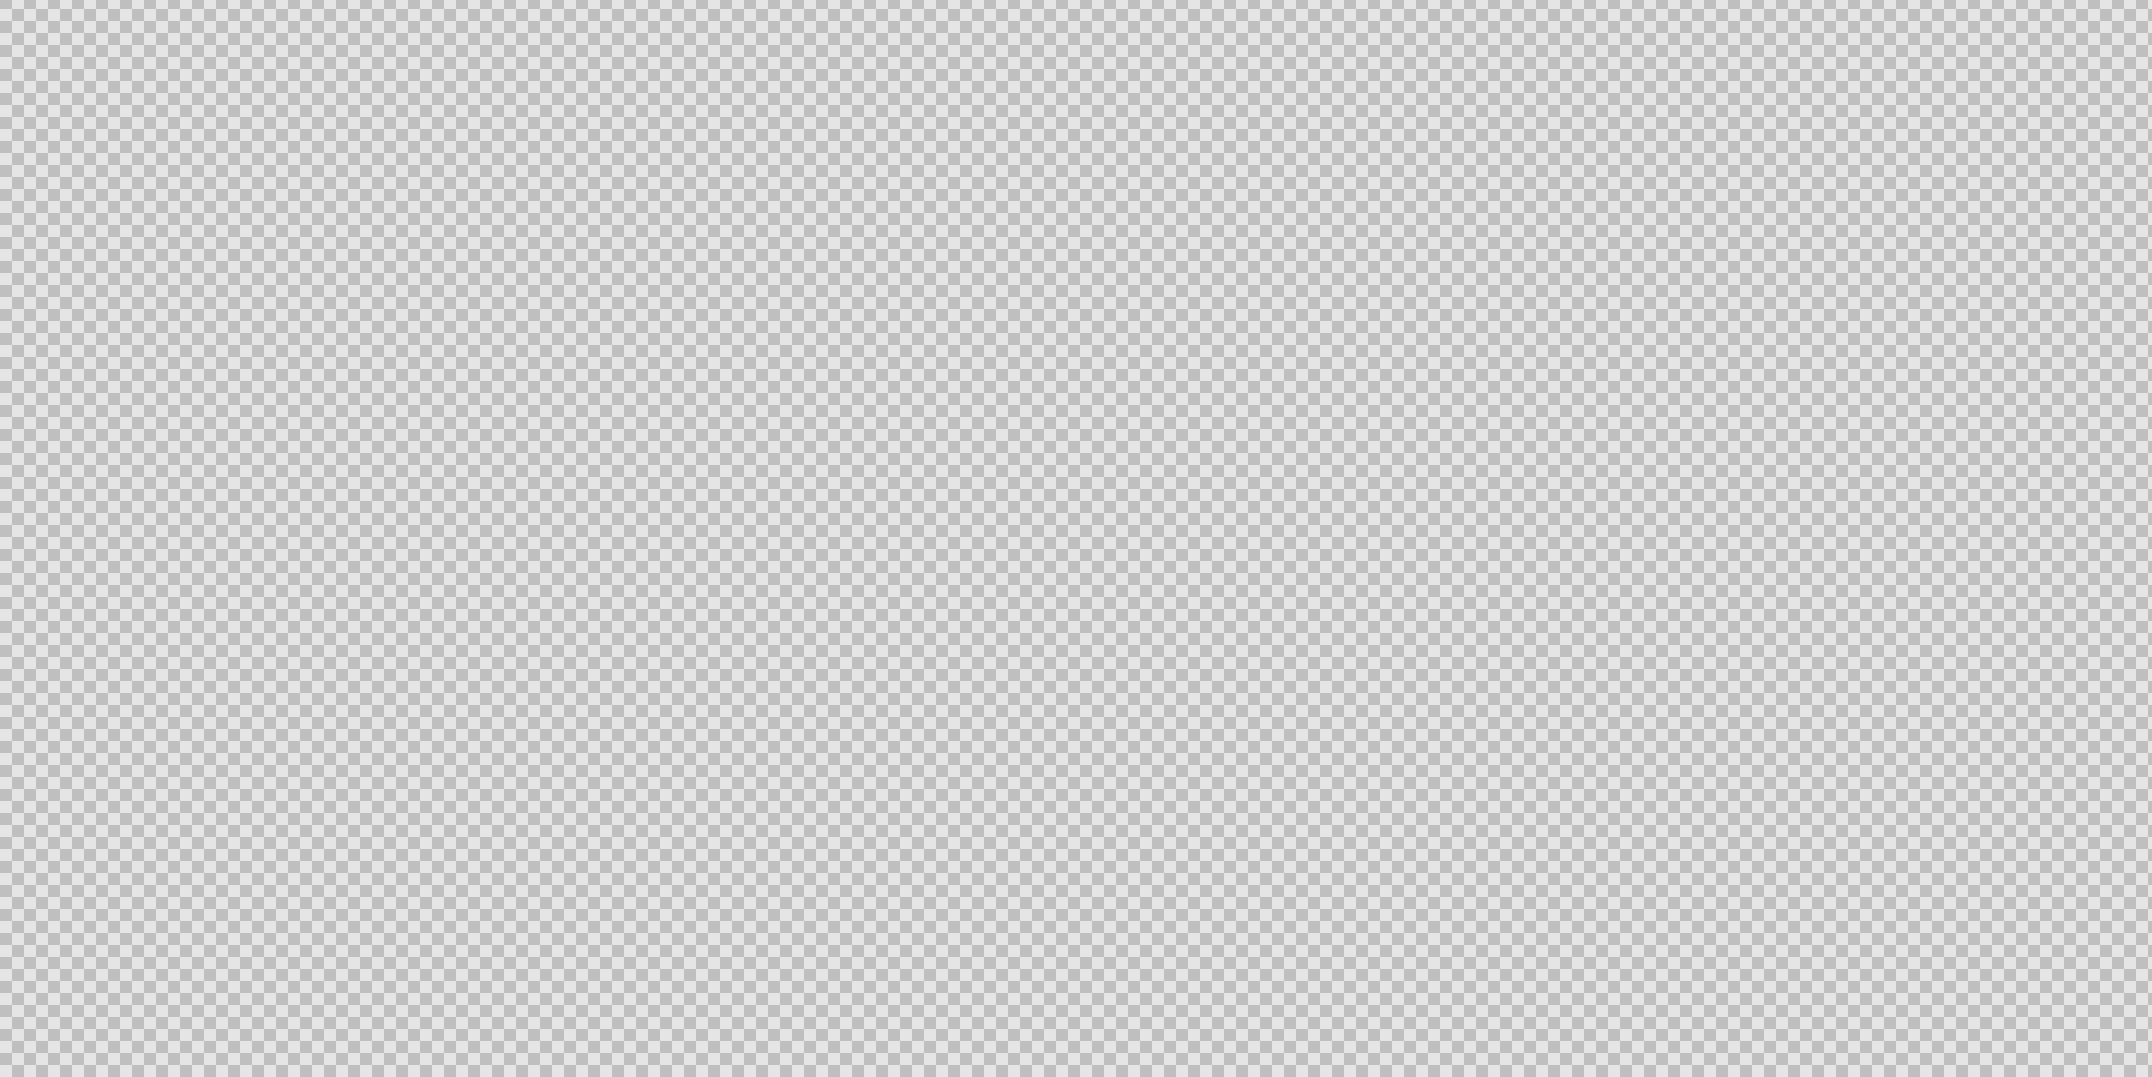 Final Cut Pro X Checkerboard Player Background